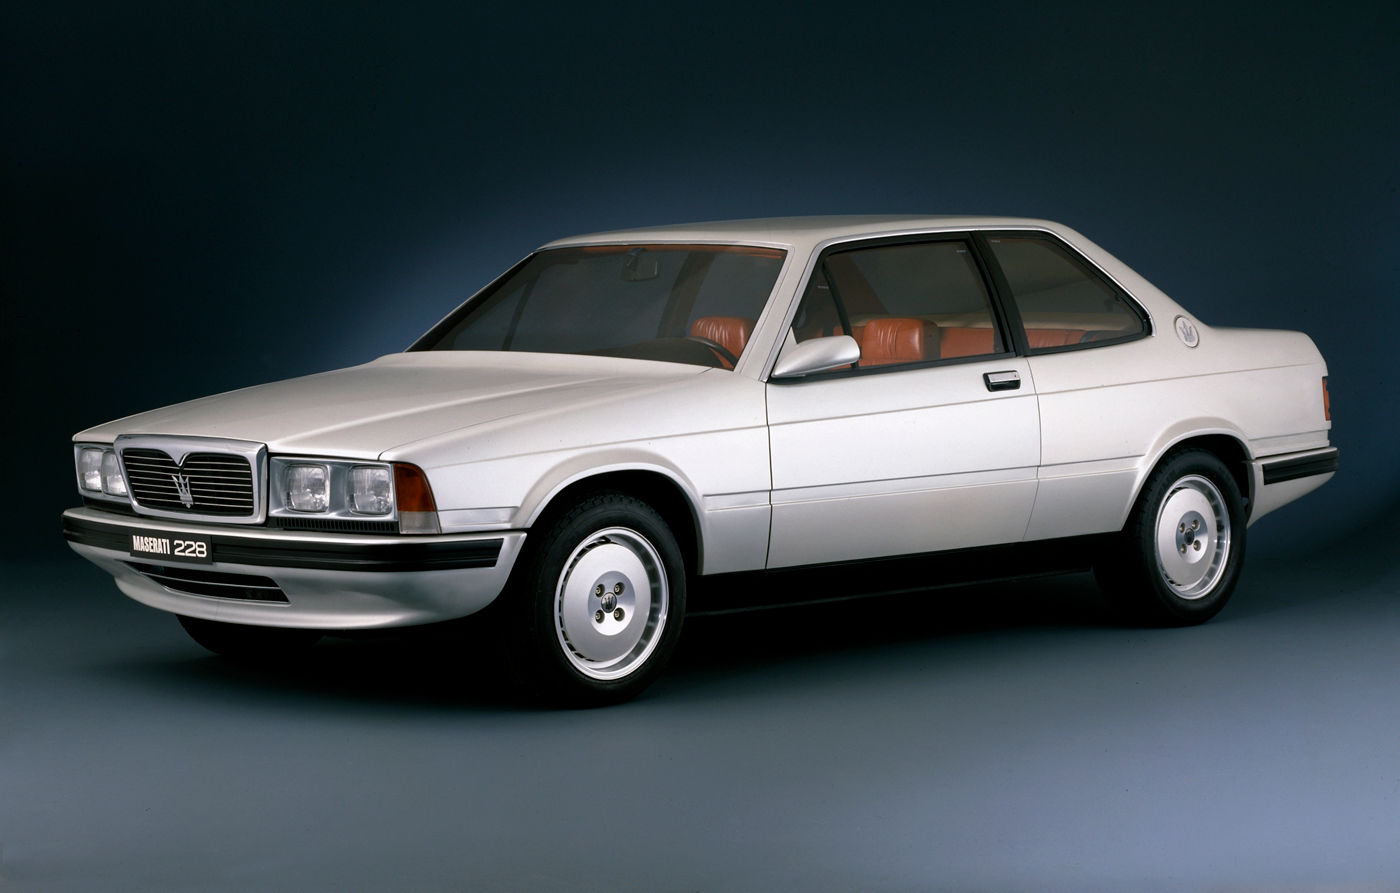 1987 Maserati 228 Biturbo - the classic car model in white